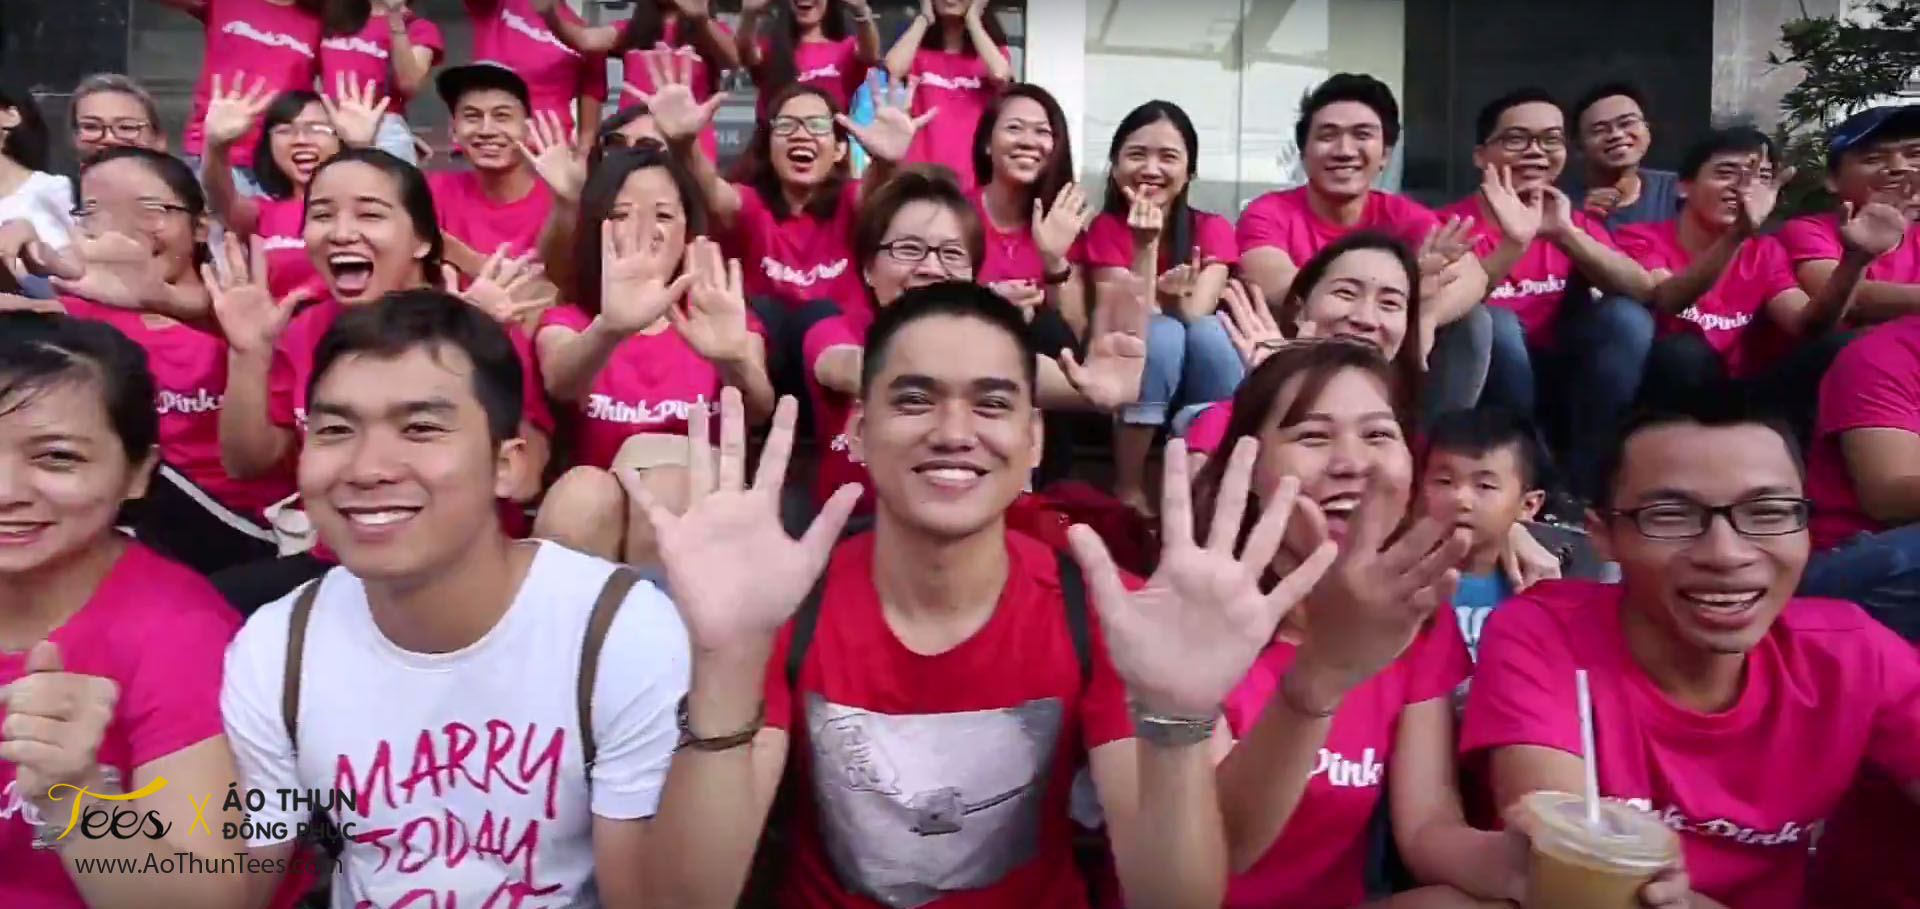 thinkpink marryvn1 - Ửng hồng áo thun Teambuilding #ThinkPink – Marry.vn